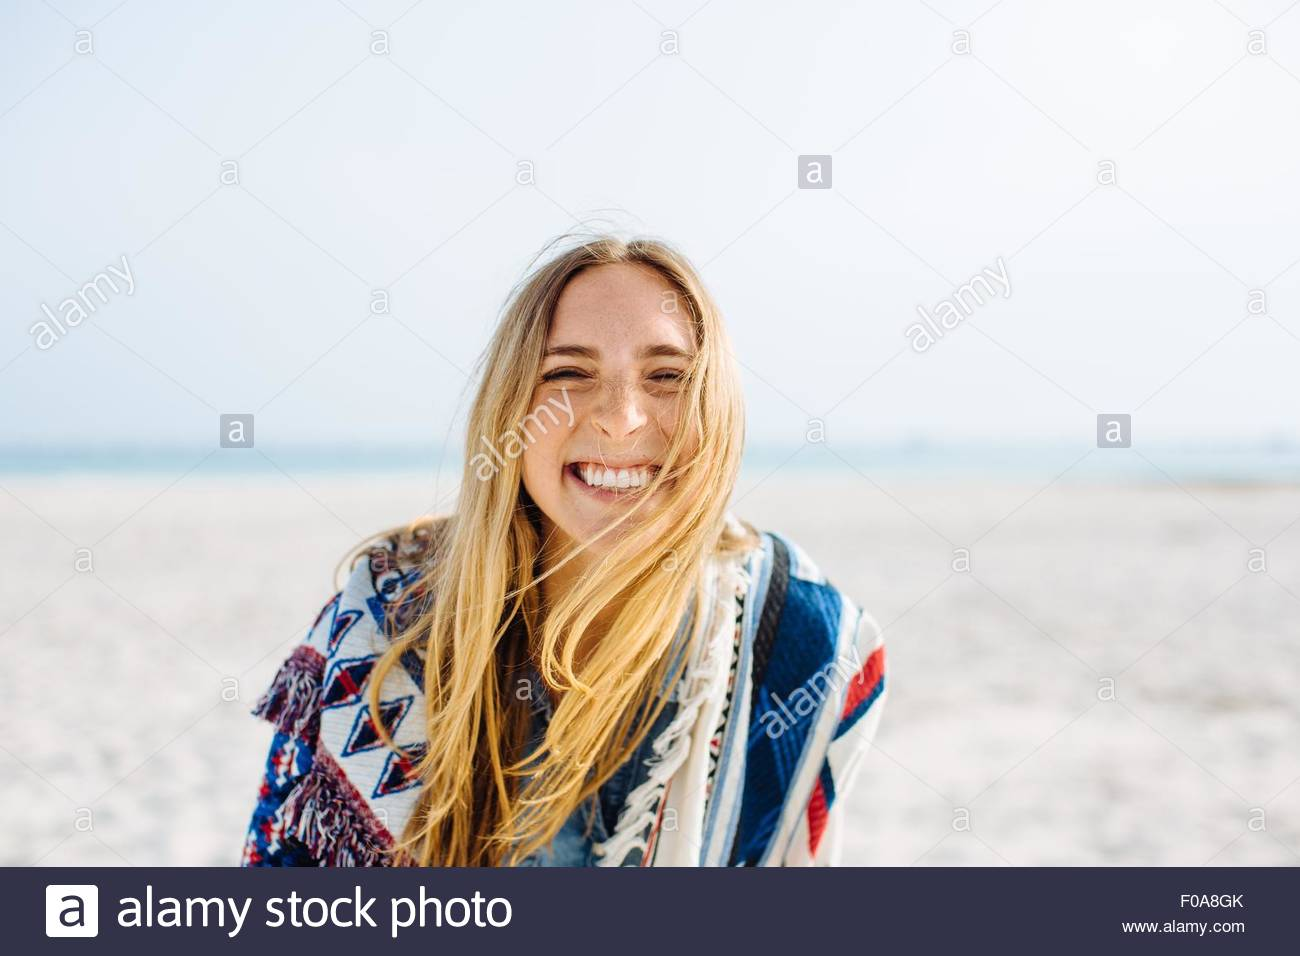 Portrait of young woman wrapped in blanket making smiley face on beach - Stock Image